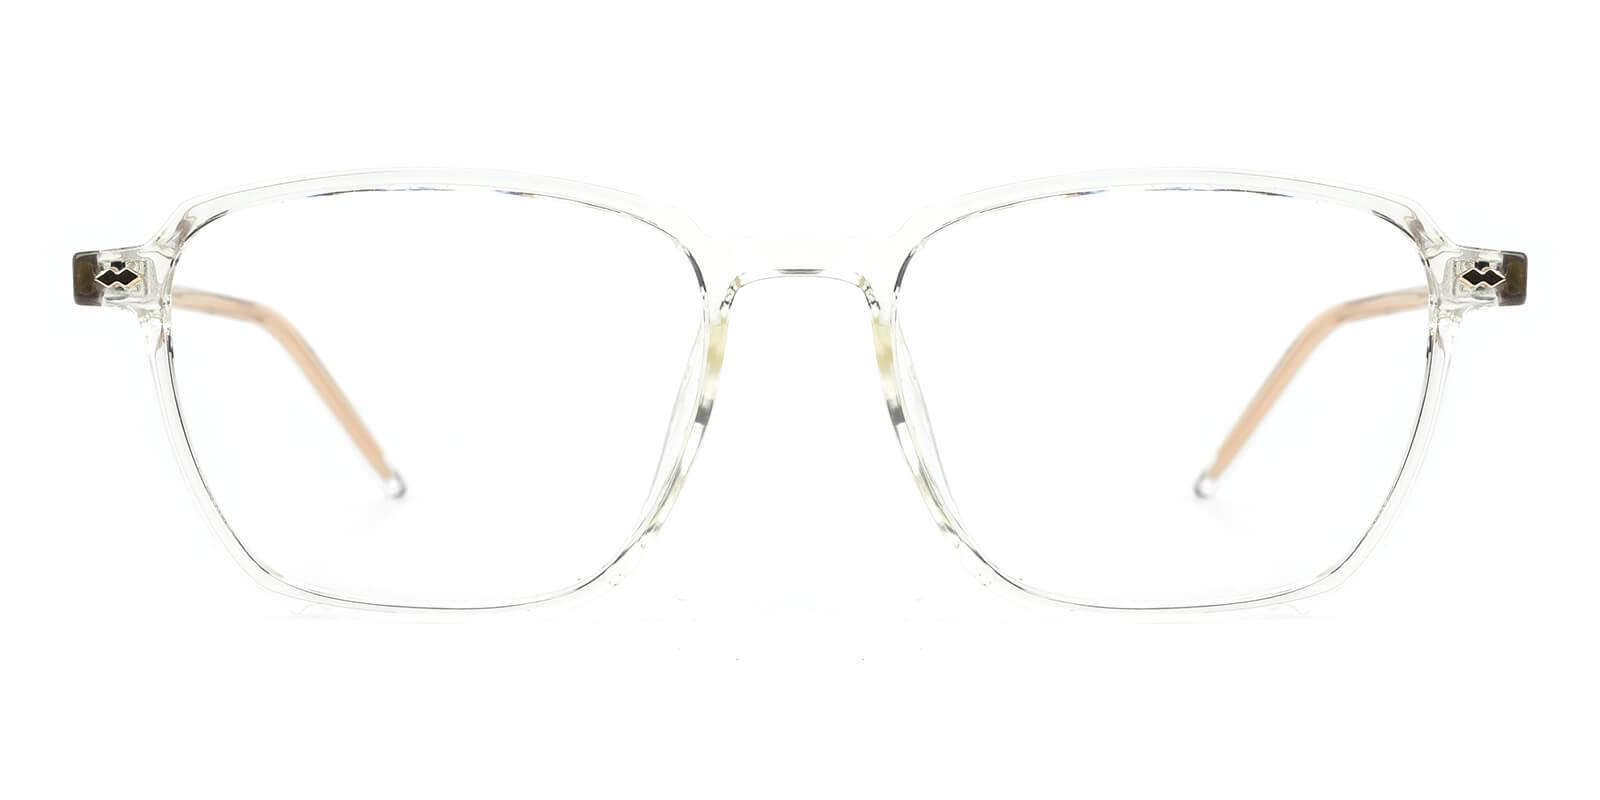 Rolita-Translucent-Square-Acetate / TR-Eyeglasses-additional2